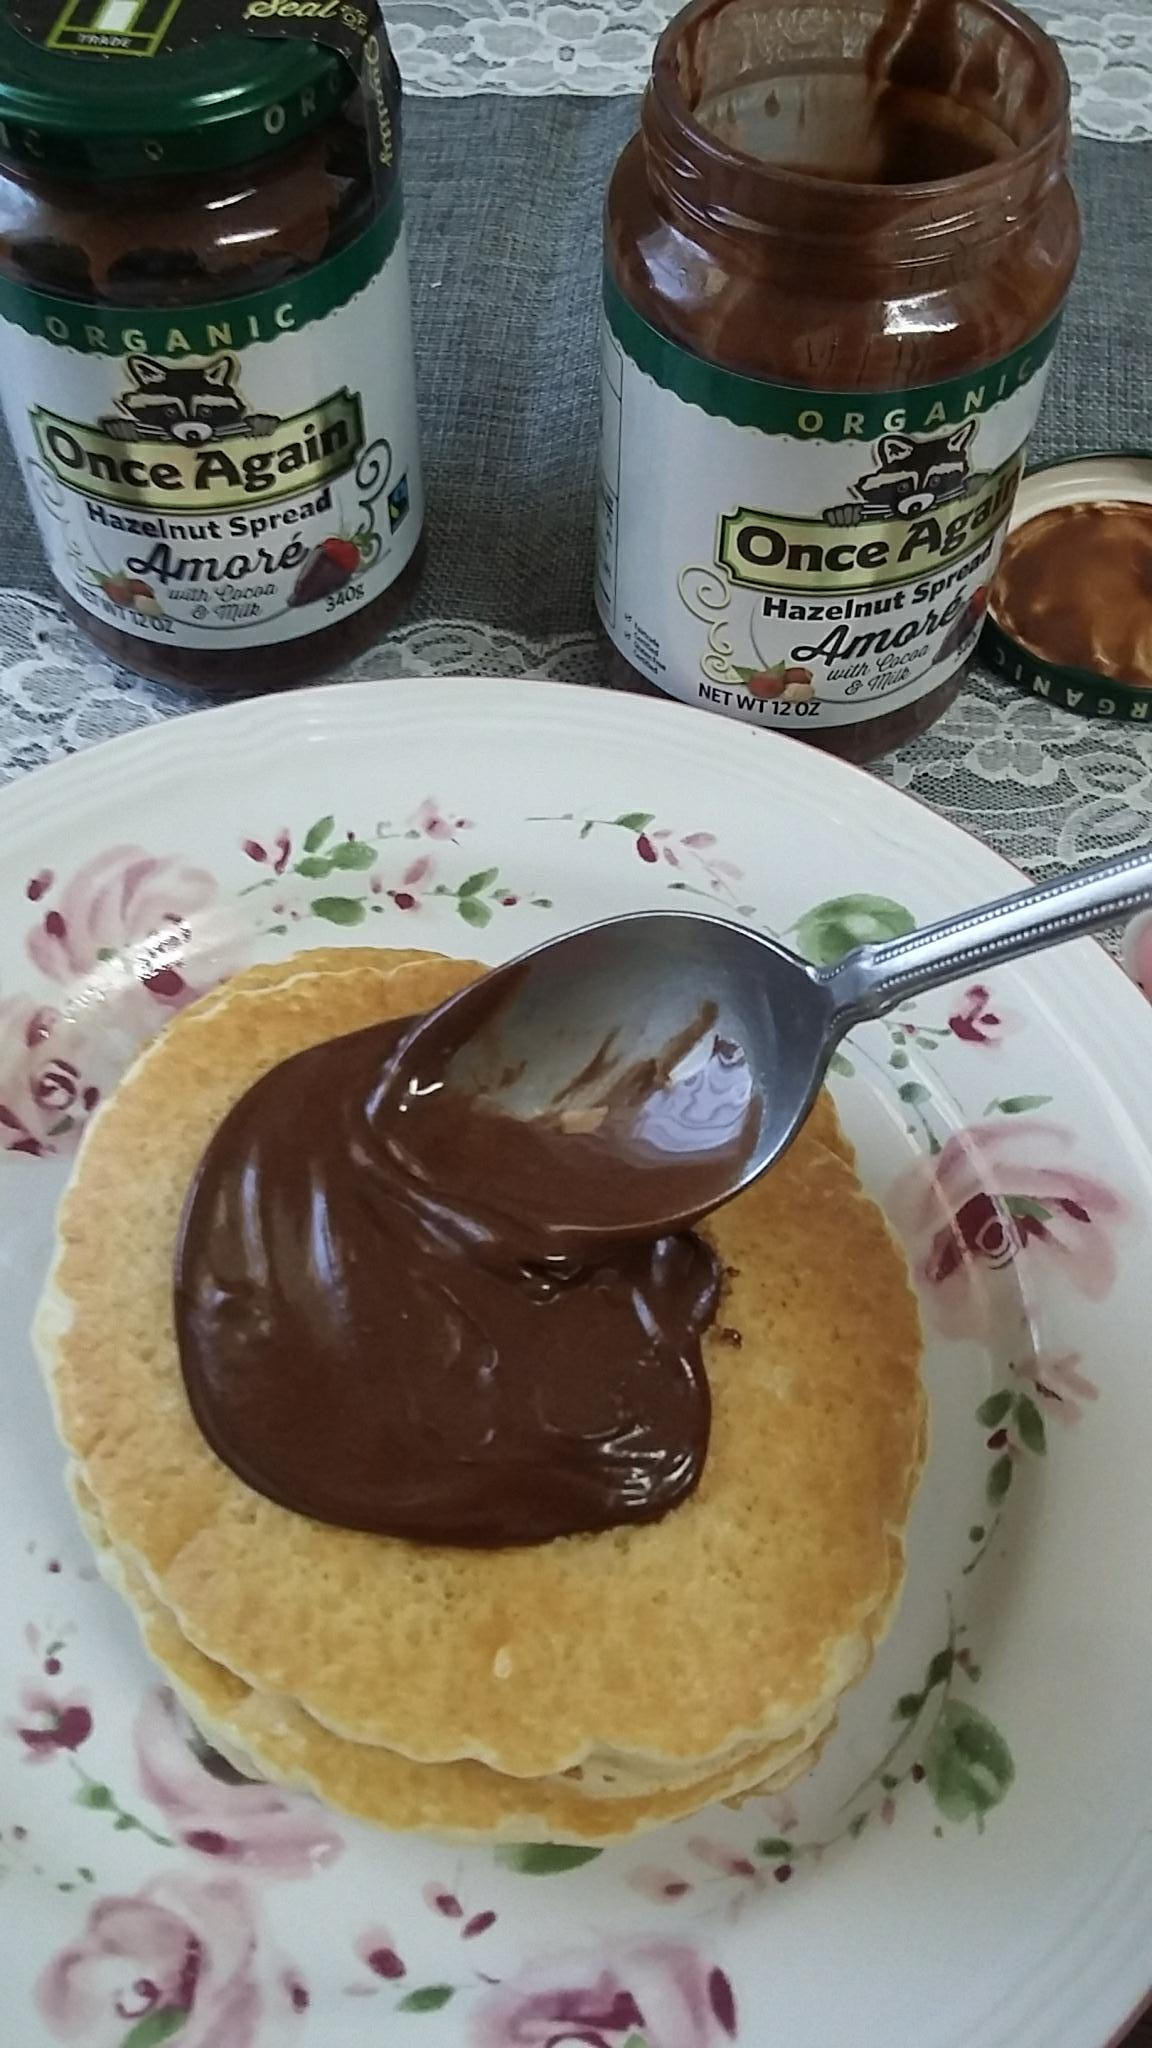 If I Could Pass on a Message, Once Again Nut Butter Amoré Hazelnut Spread #momsmeet #ad